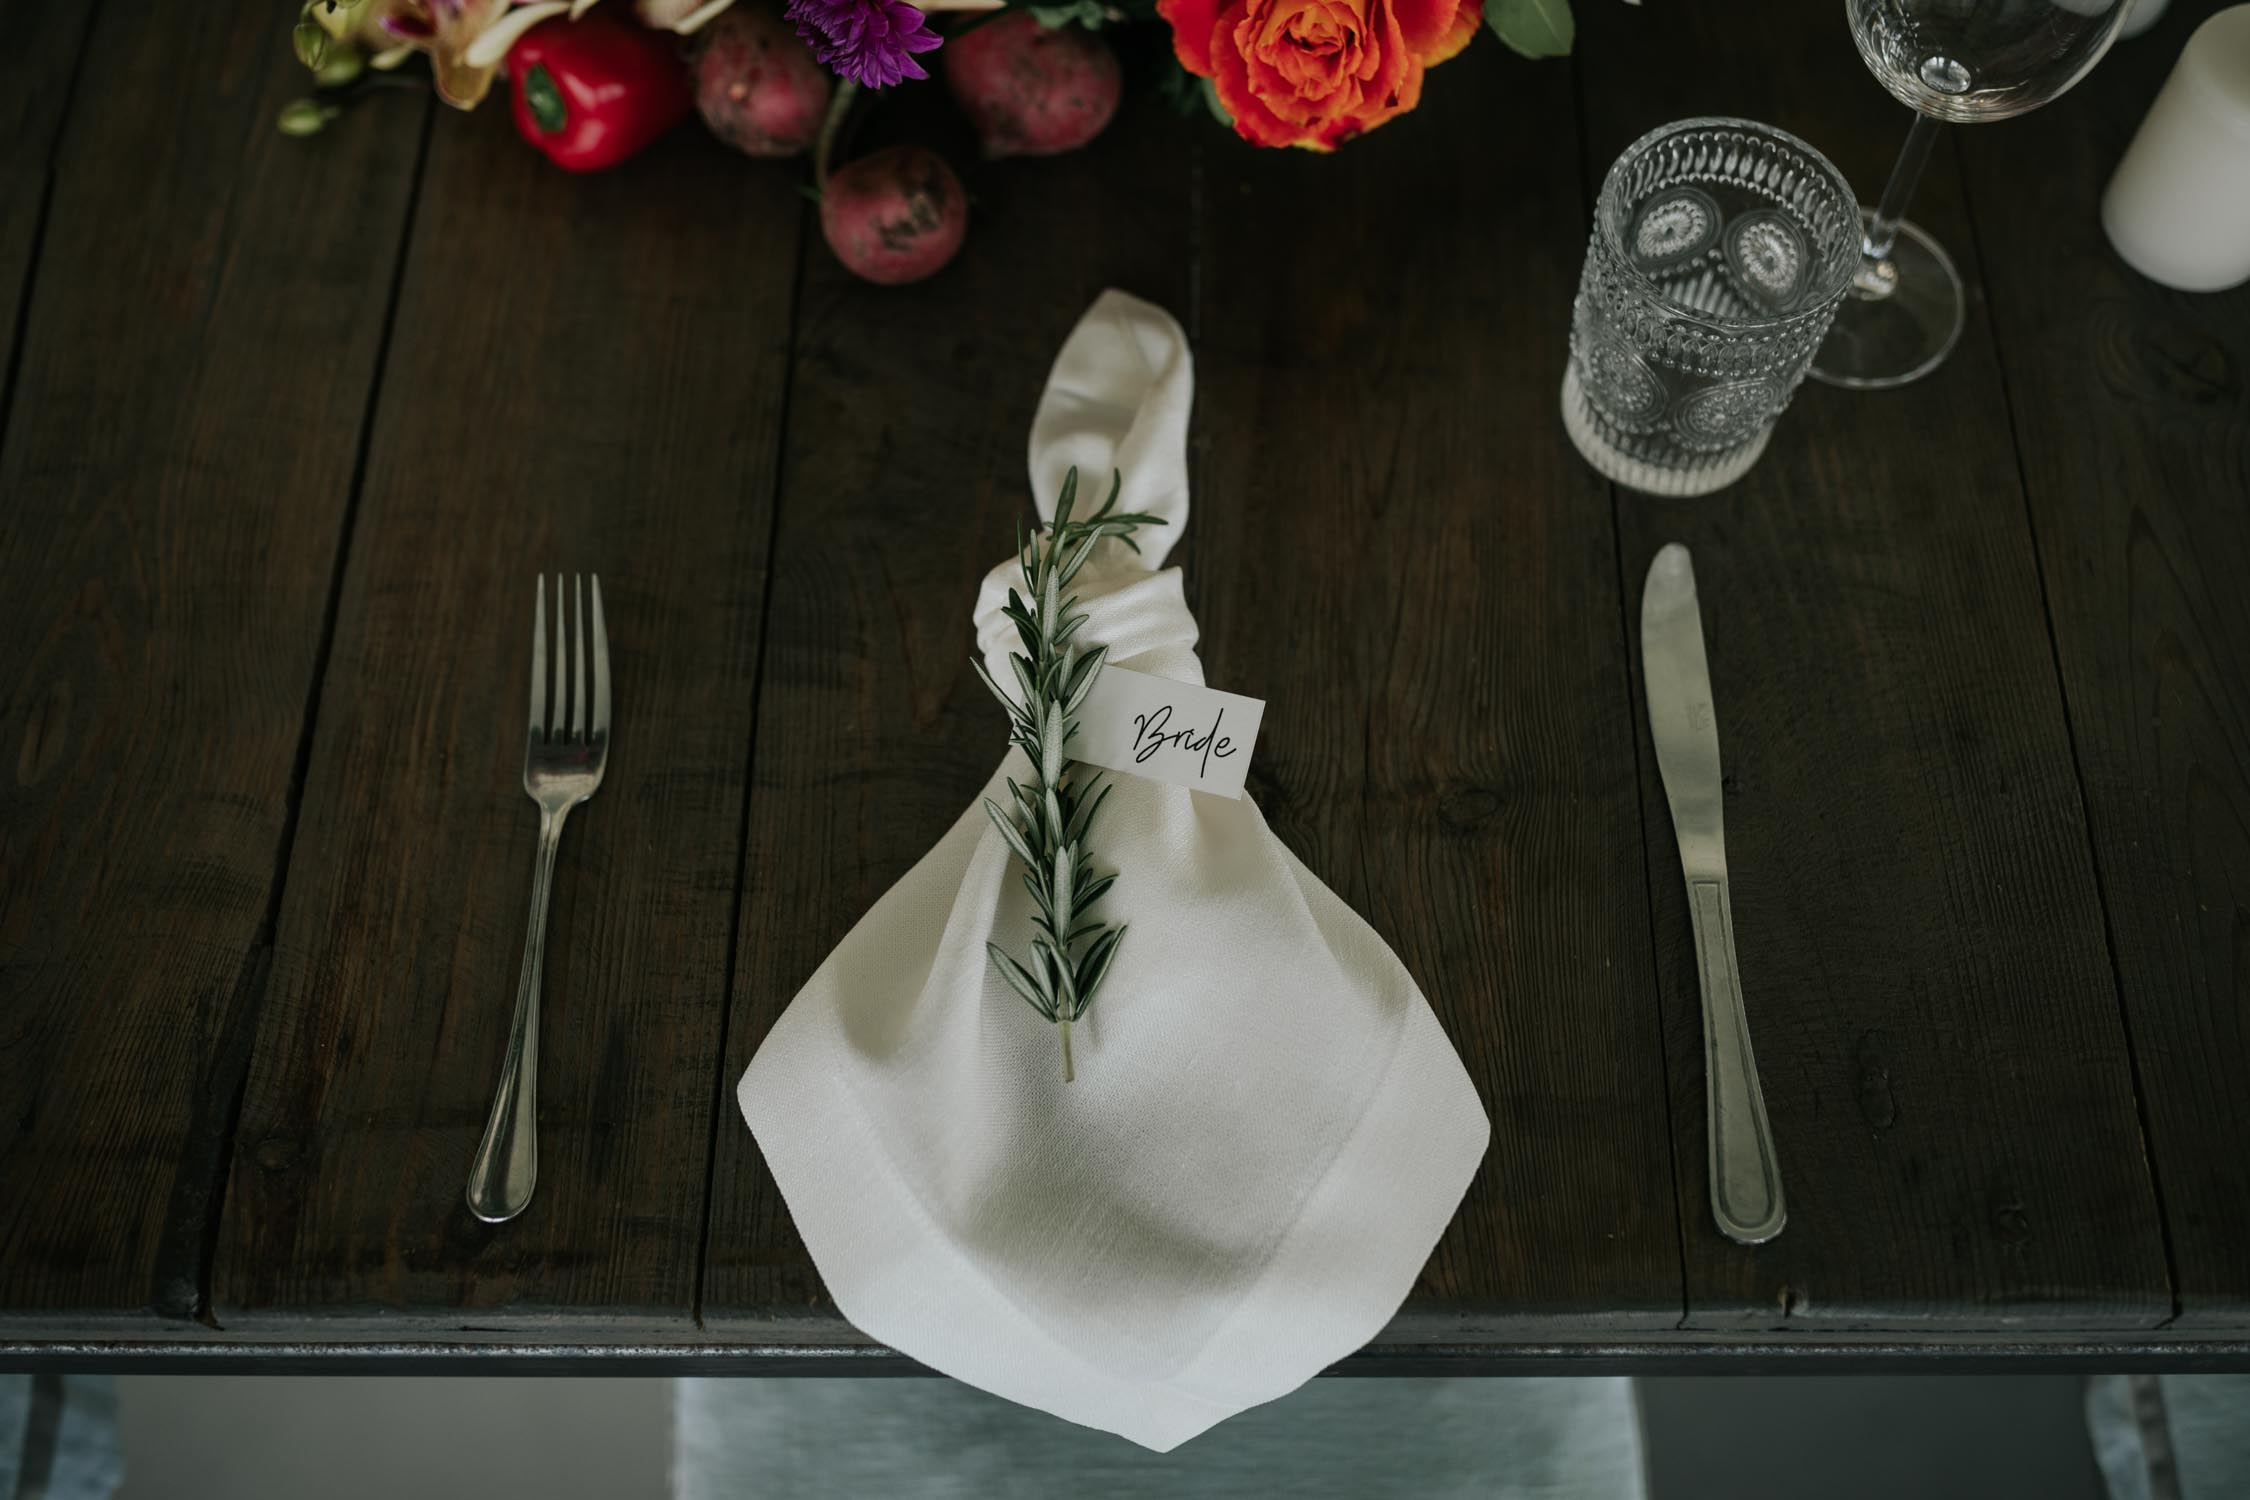 Wedding table setting knoted white linen napkin and rosemary sprig